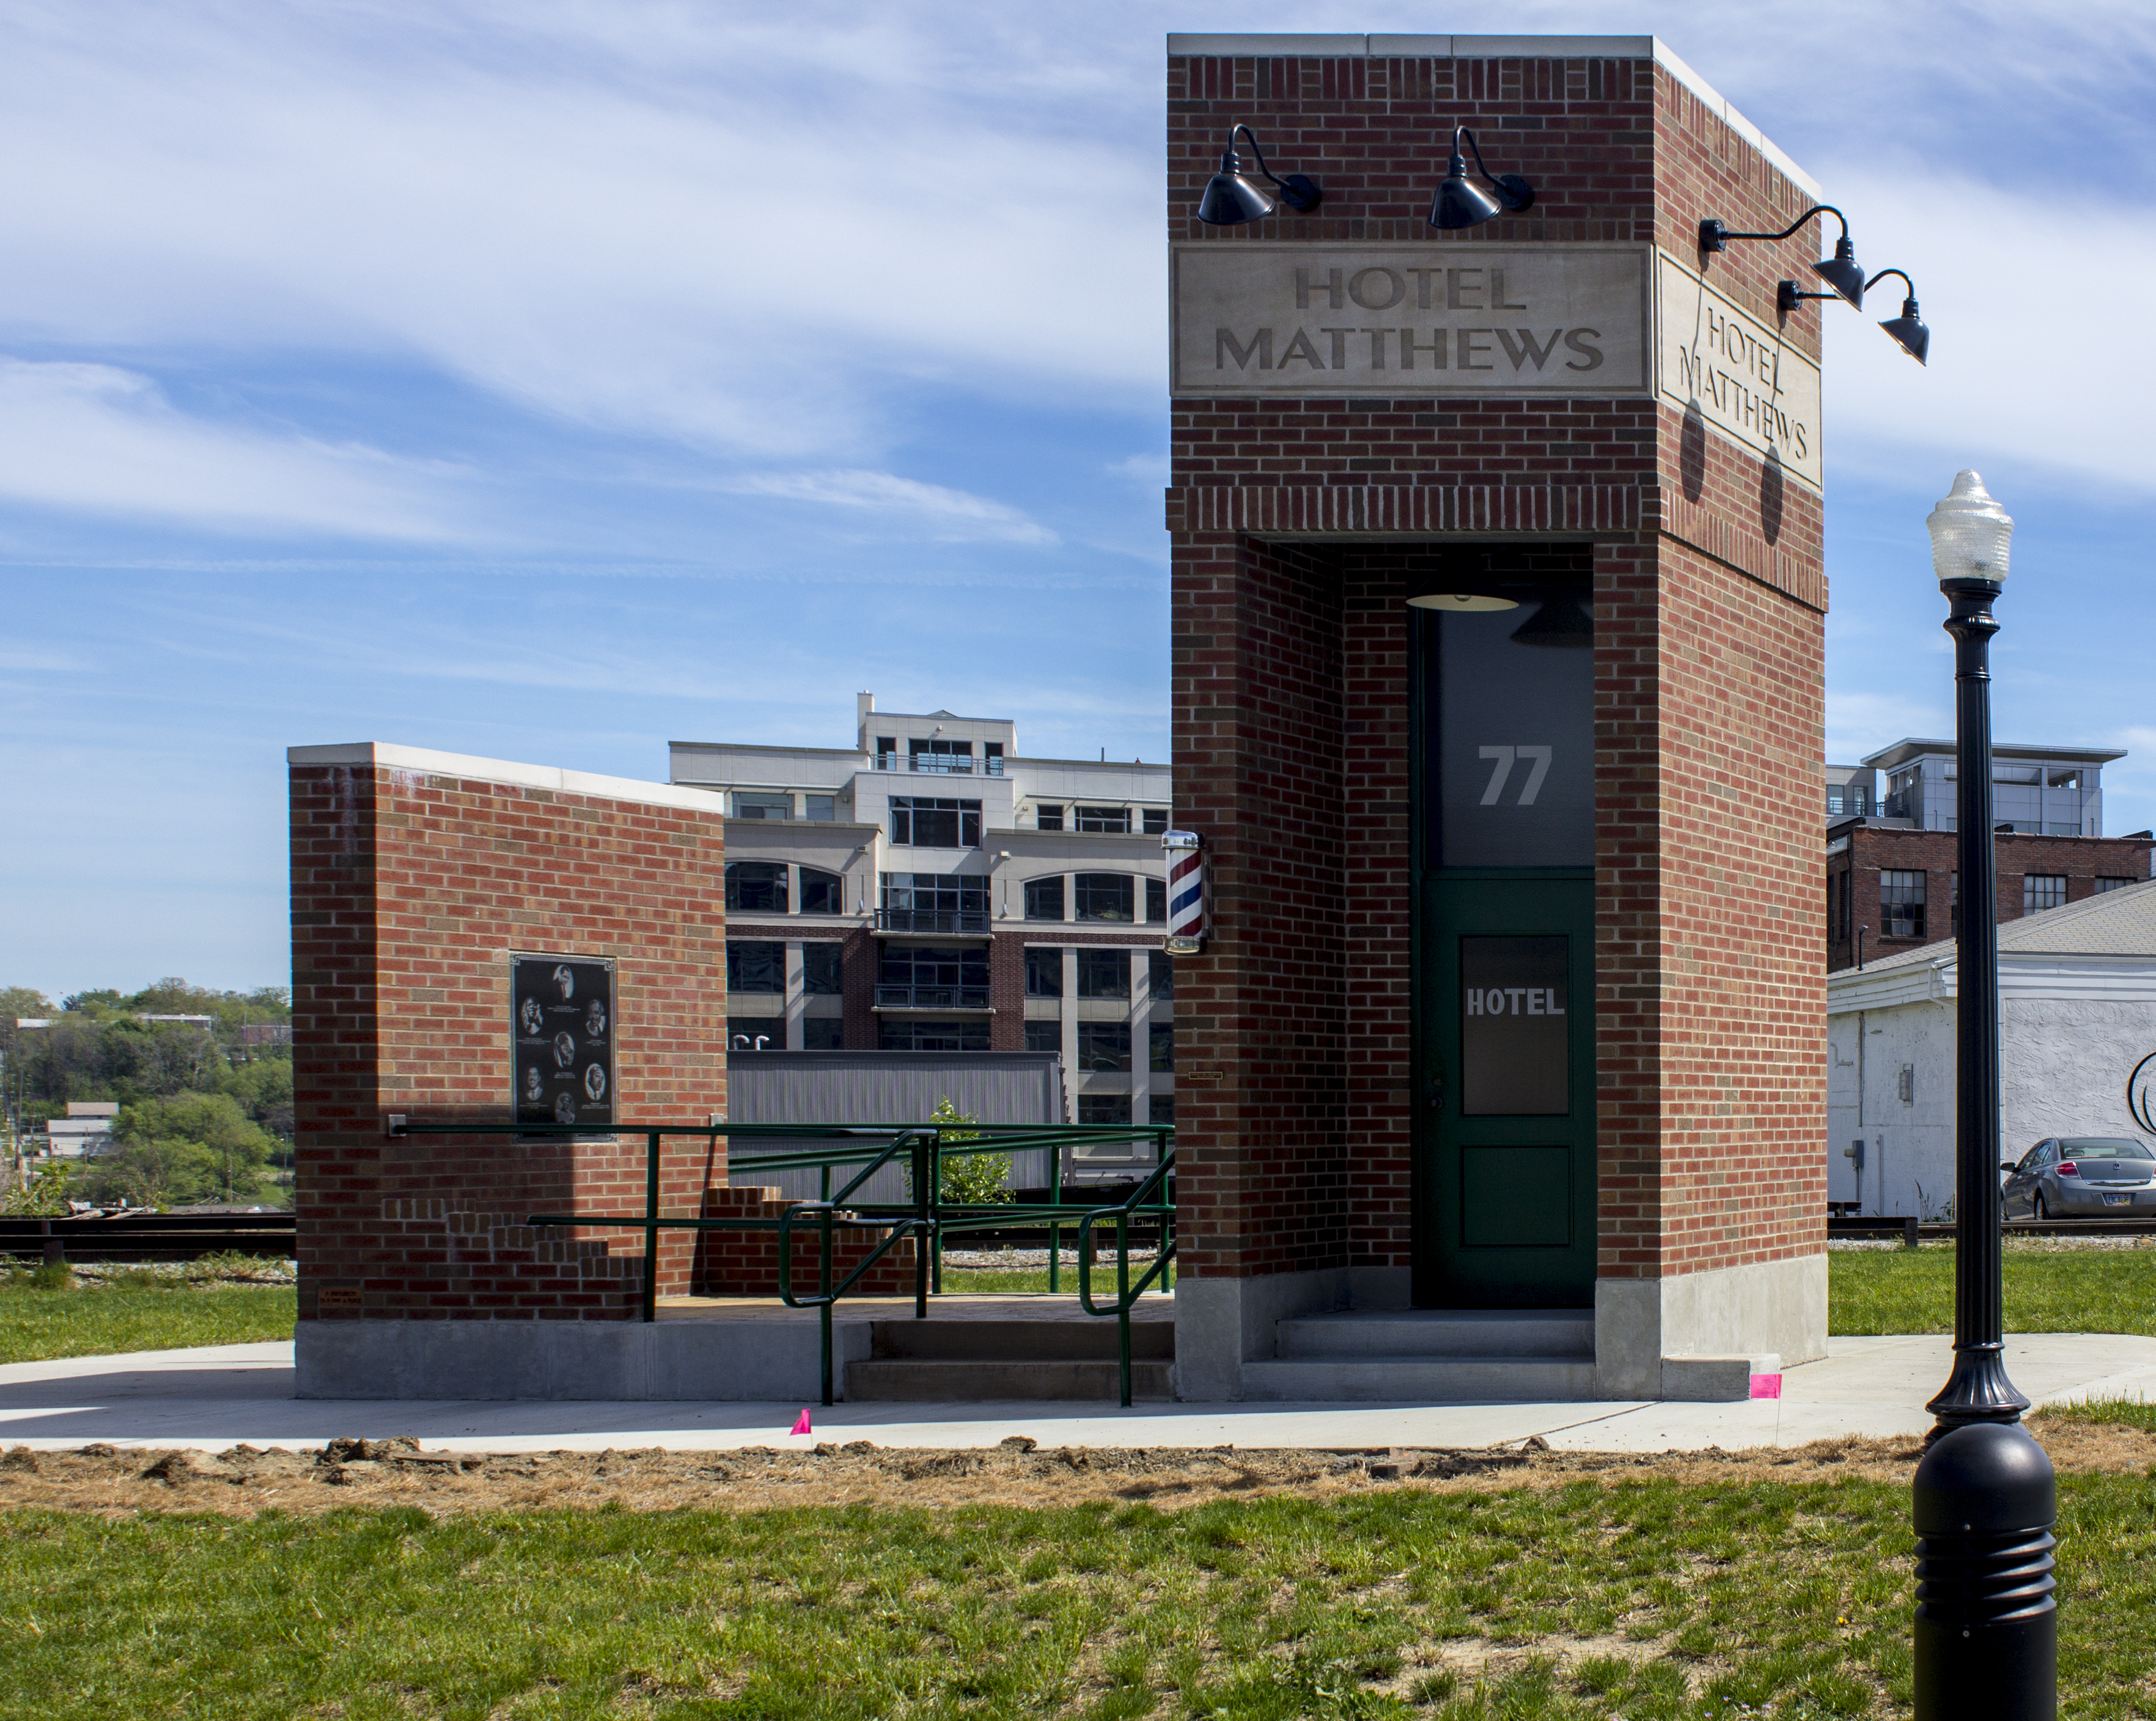 This small construction is a memorial for Hotel Matthews, a central component of the Howard Street district.